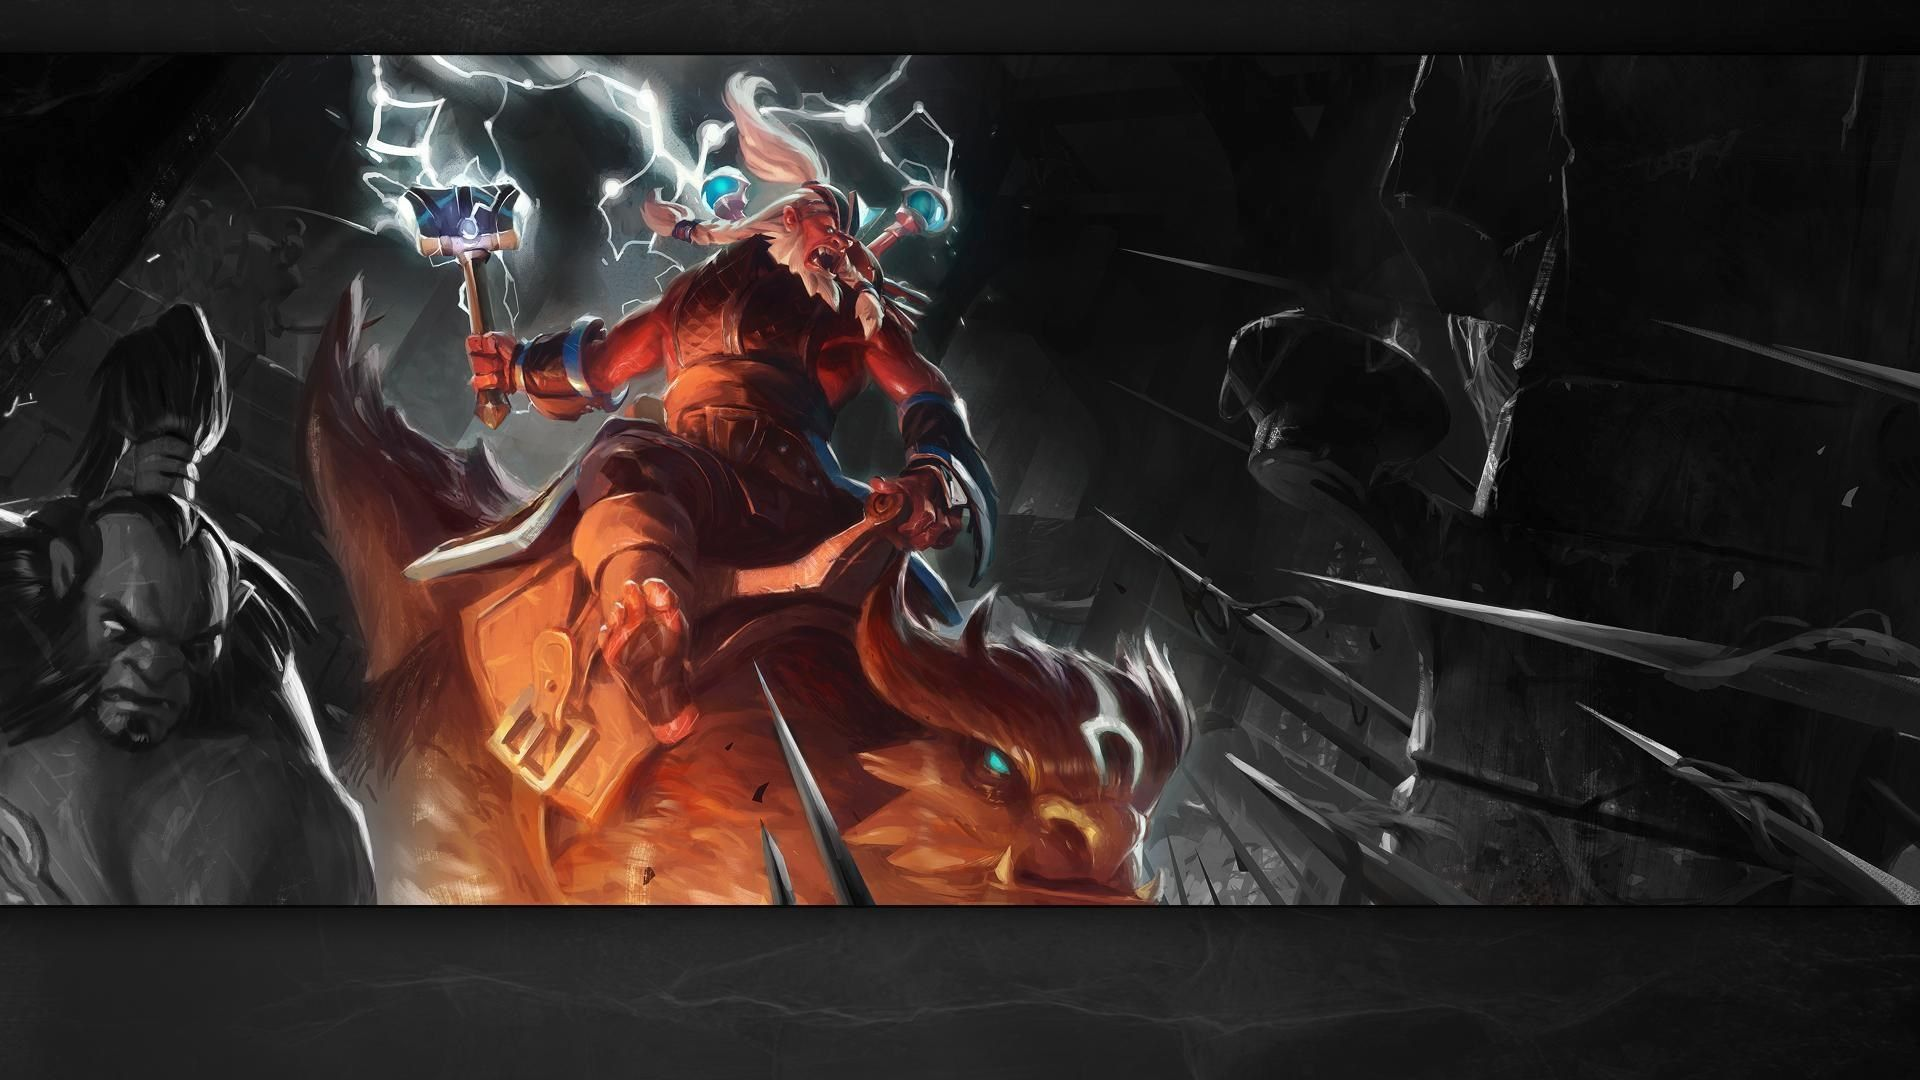 hdq images dota 2 wallpaper by buck smith 2017 03 26